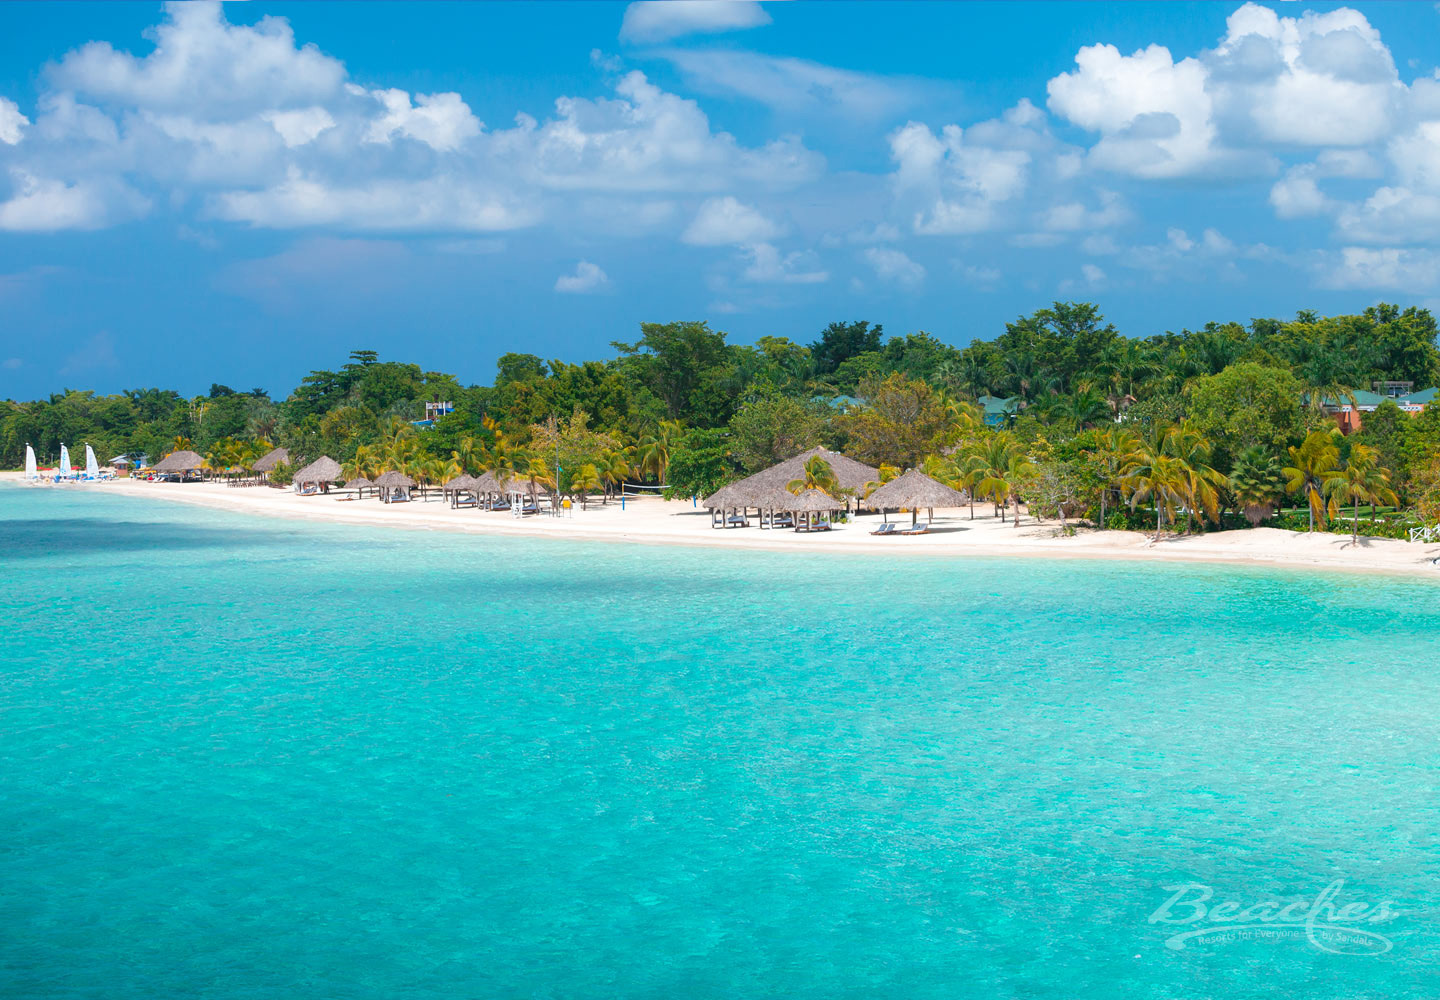 Travel Agency All-Inclusive Resort Beaches Negril 009